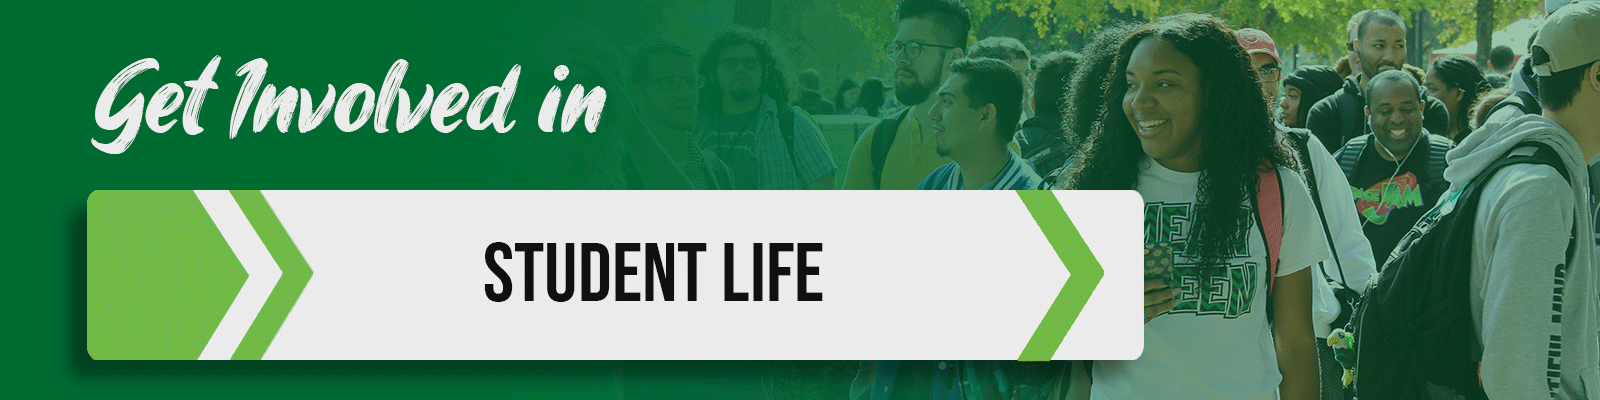 student life programs and services